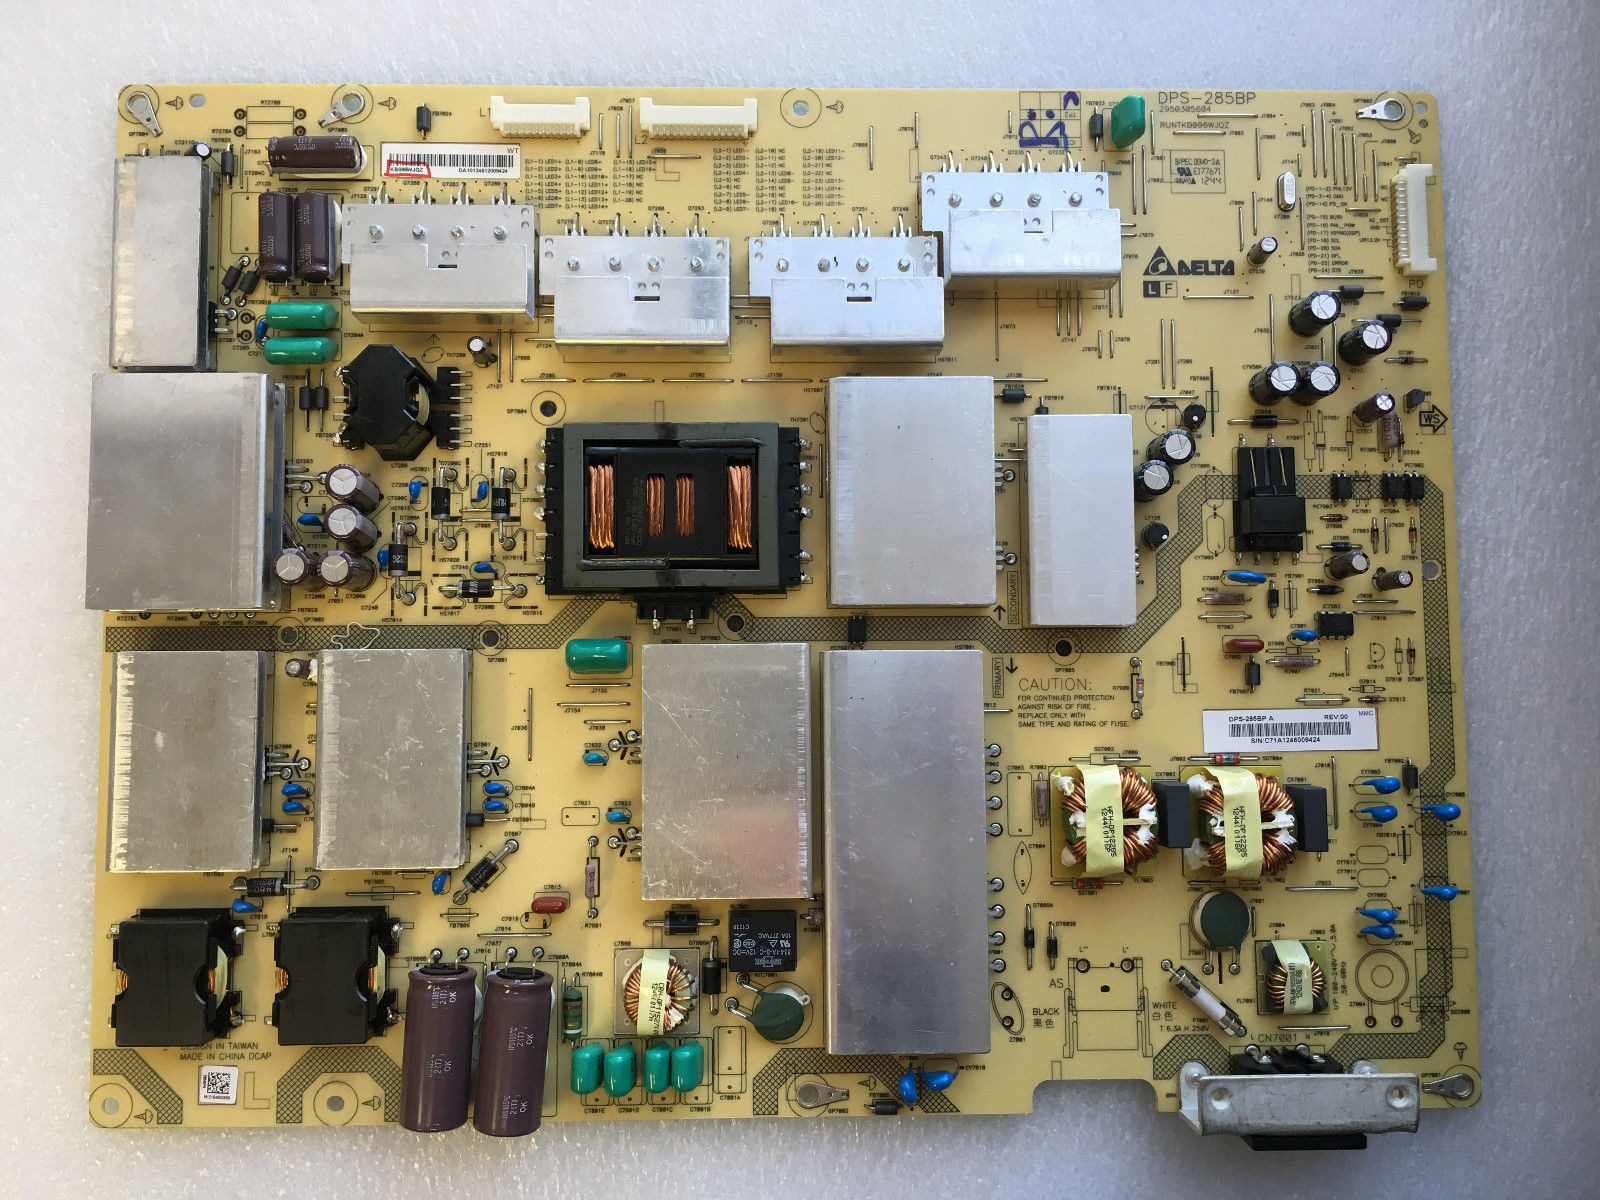 Sharp RUNTKB096WJQZ (DPS-285BP A) Power Supply LED Board